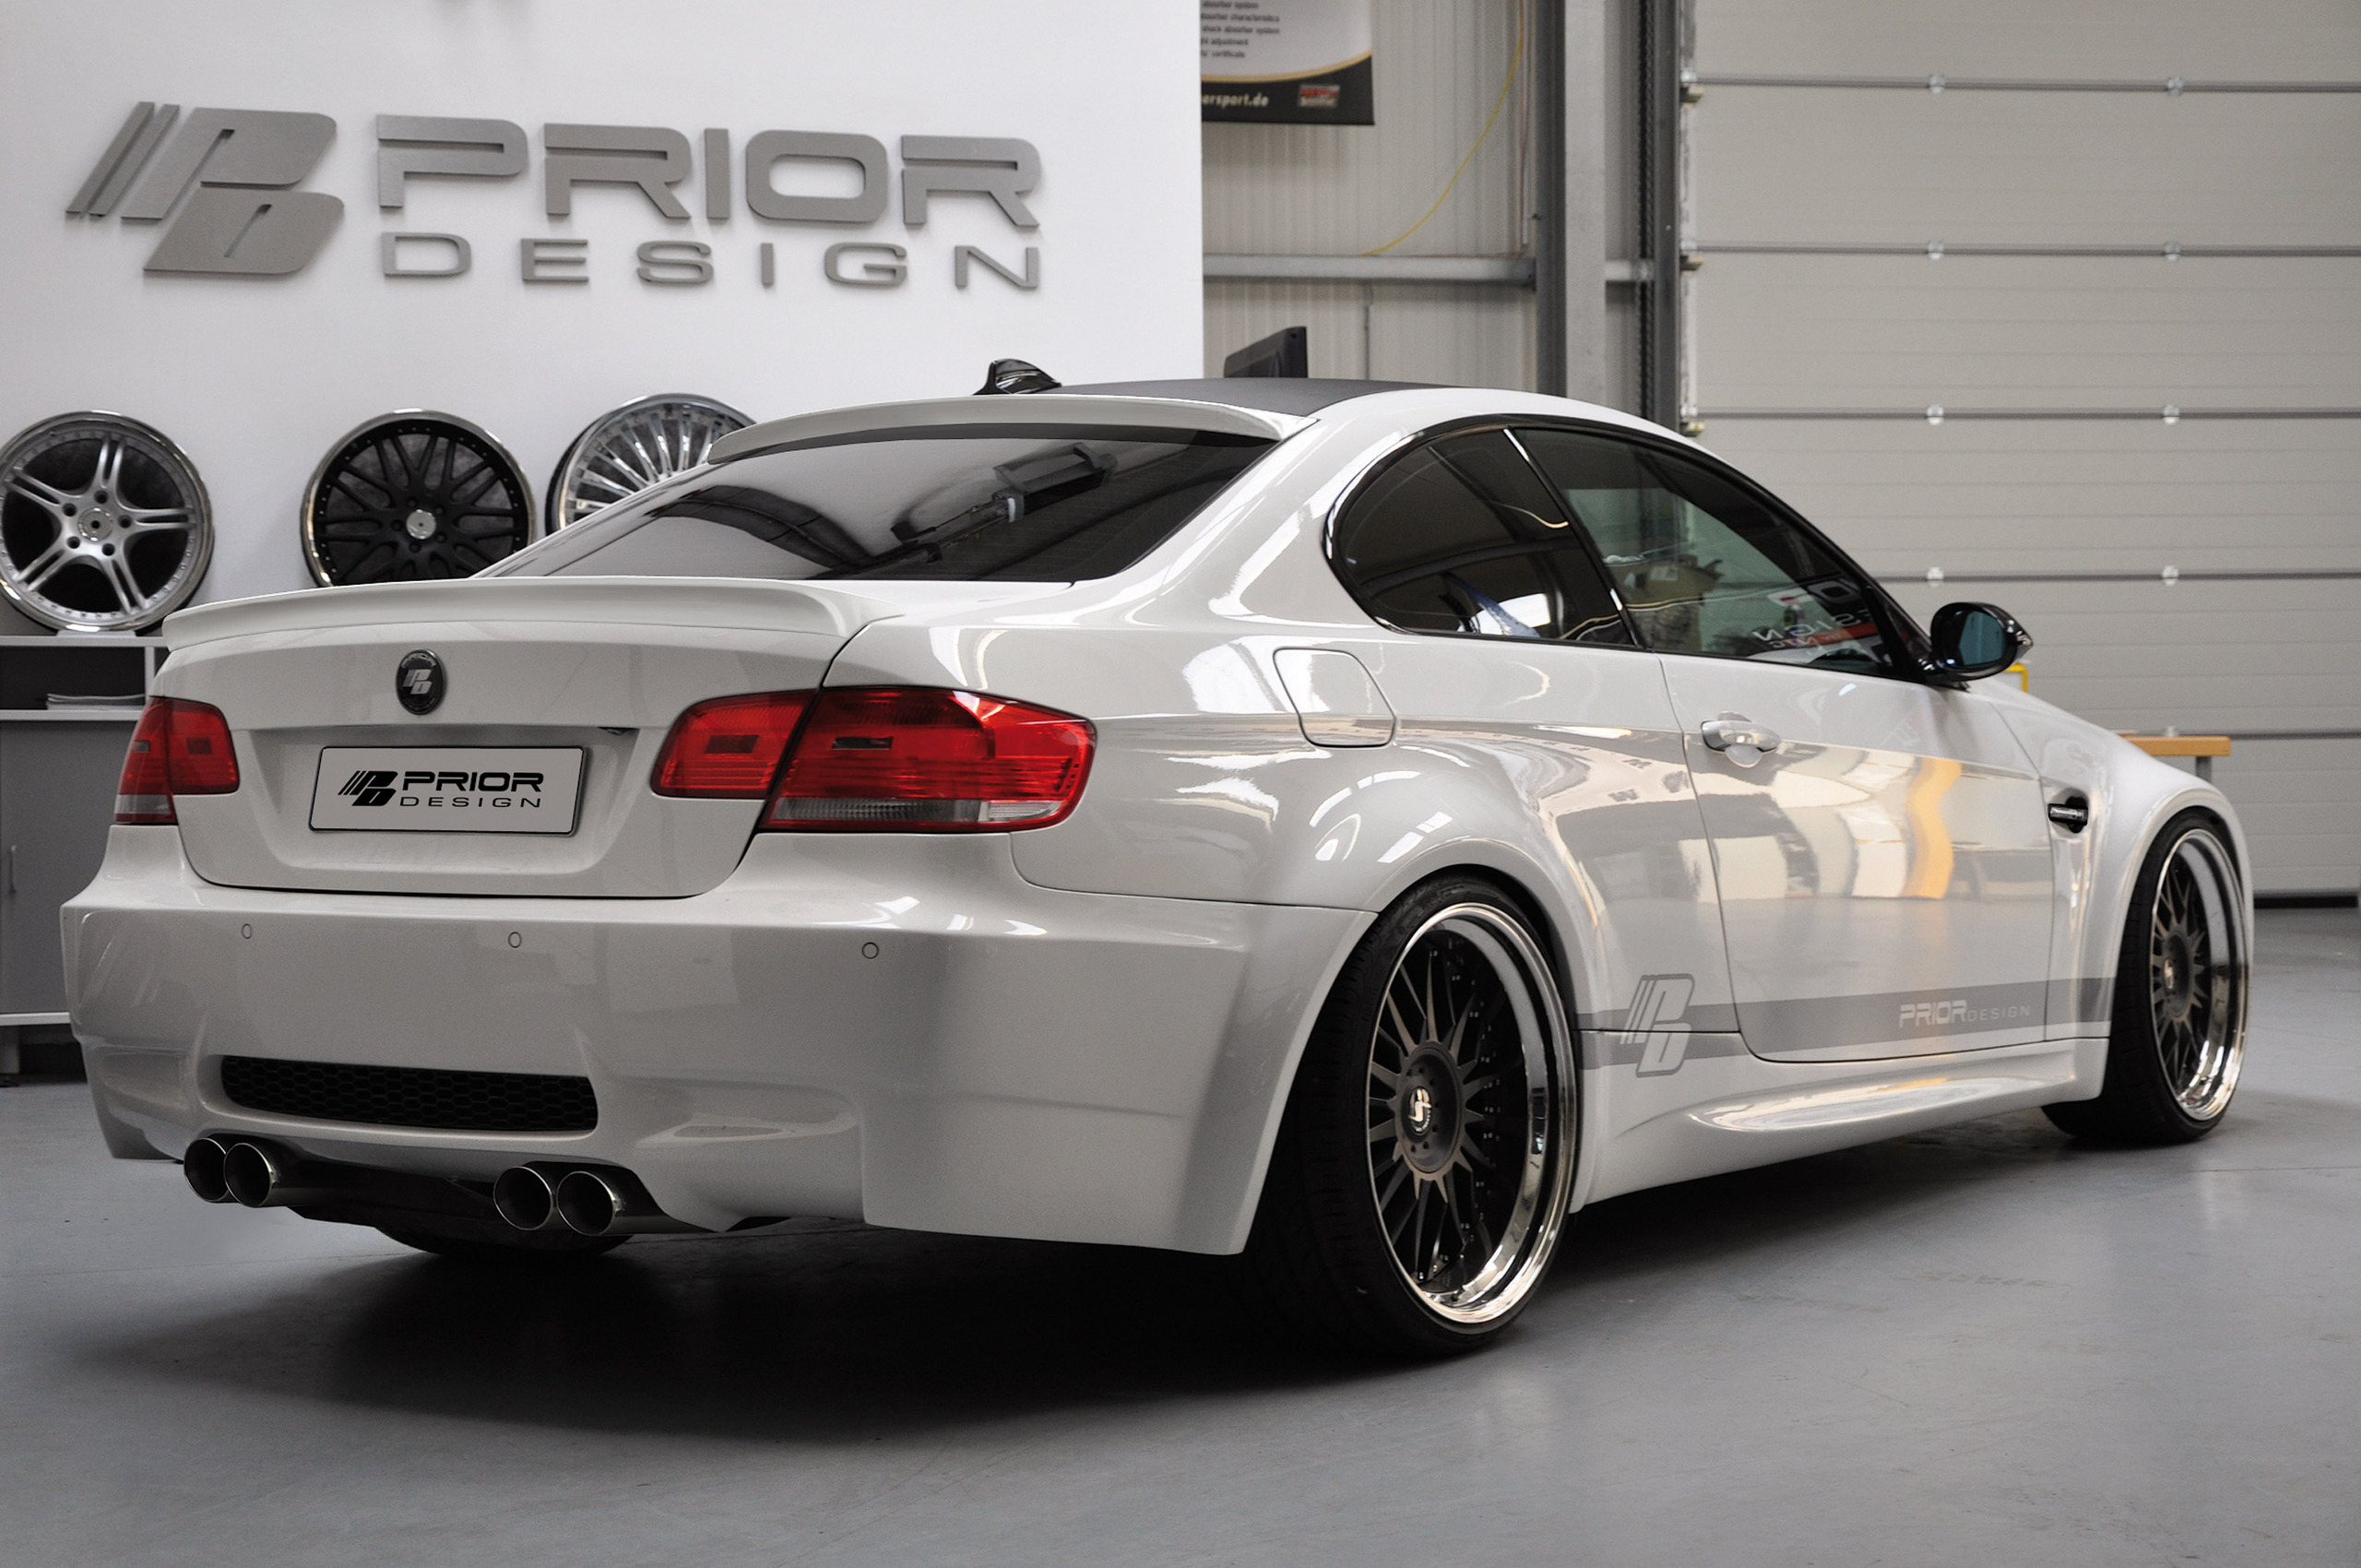 bmw images bmw e92 m3 by prior design hd wallpaper and background photos 26822379. Black Bedroom Furniture Sets. Home Design Ideas